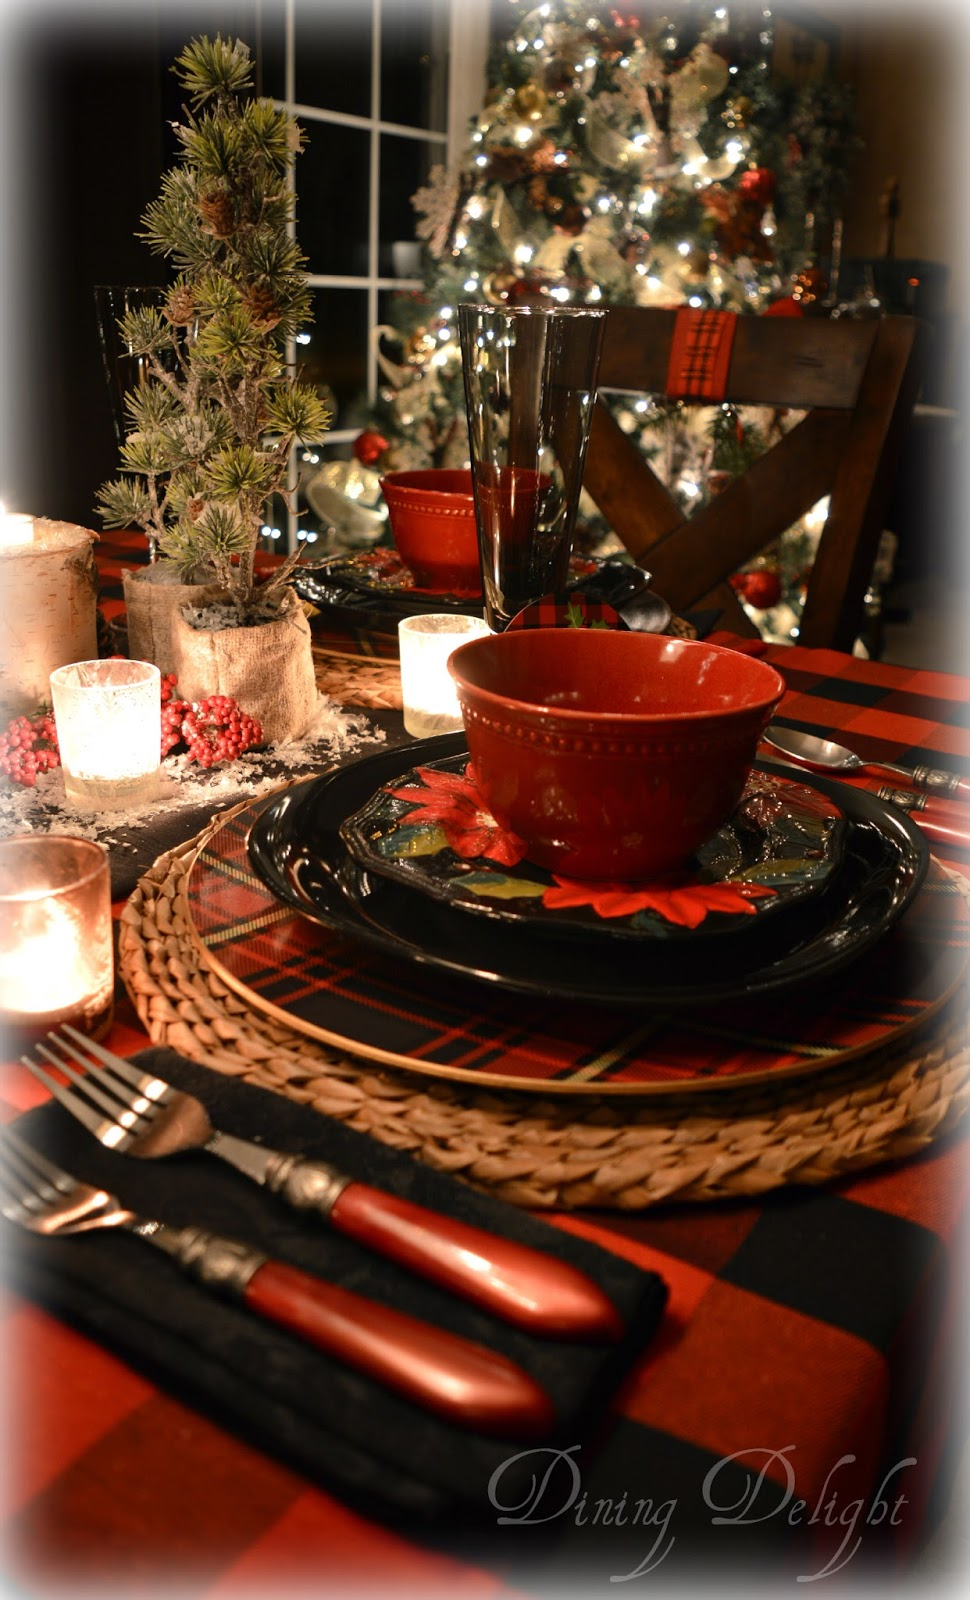 Dining delight canadian lodge inspired christmas tablescape